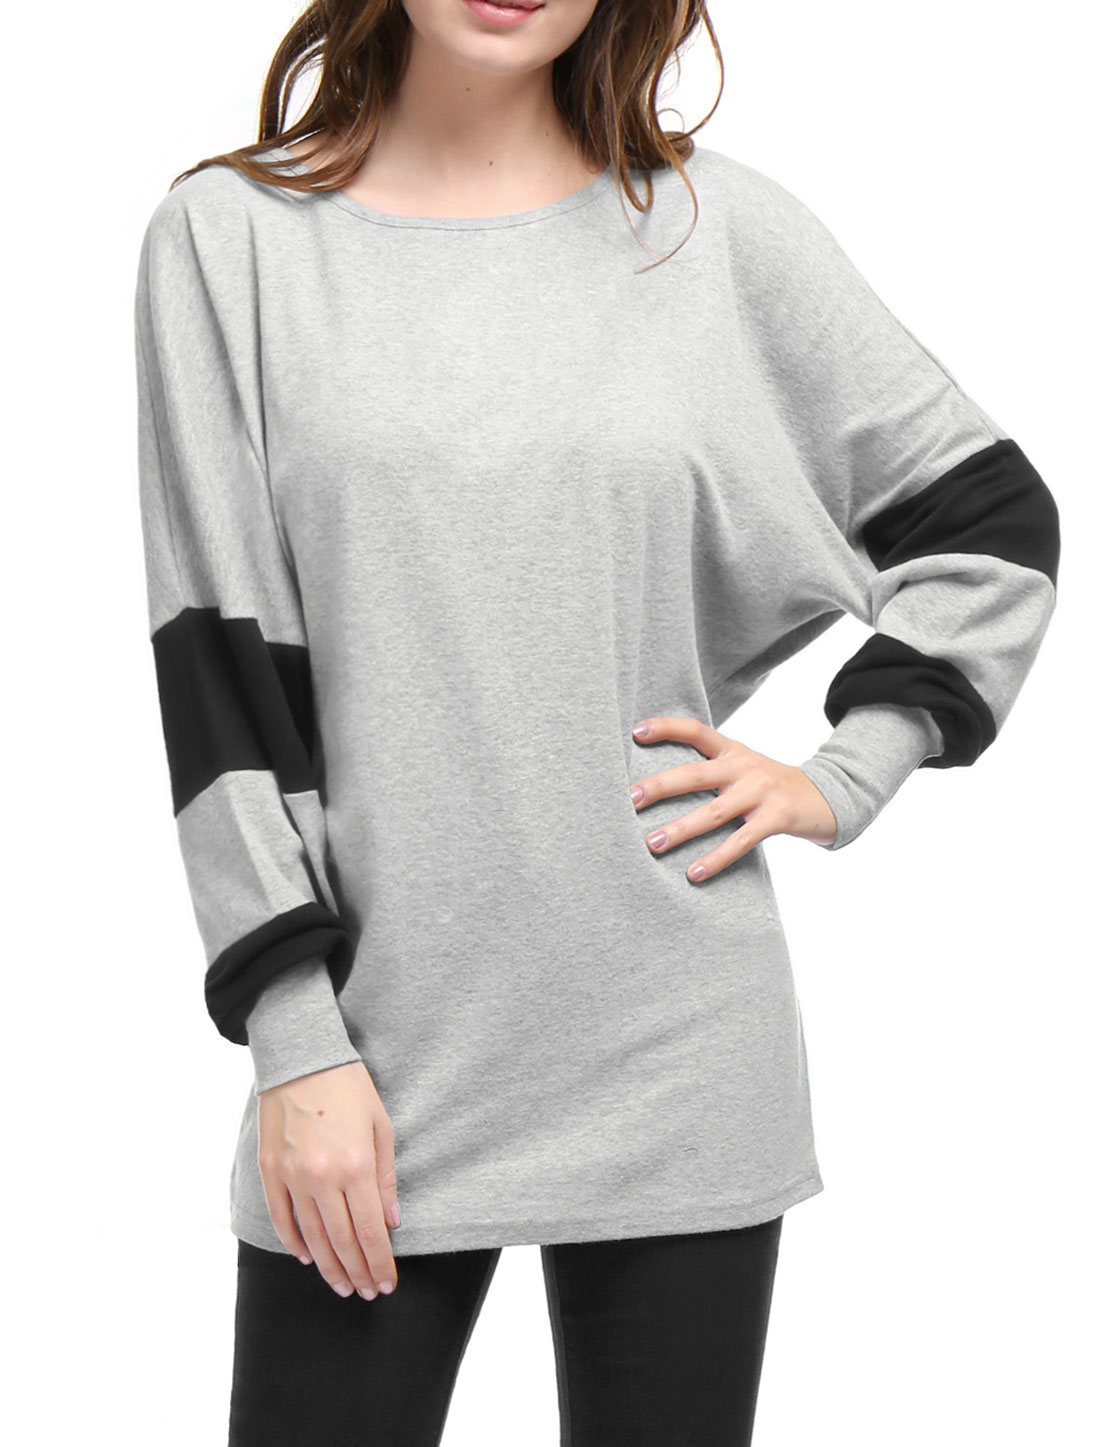 Women Color Block Batwing Sleeves Loose Tunic Top Light Gray XL